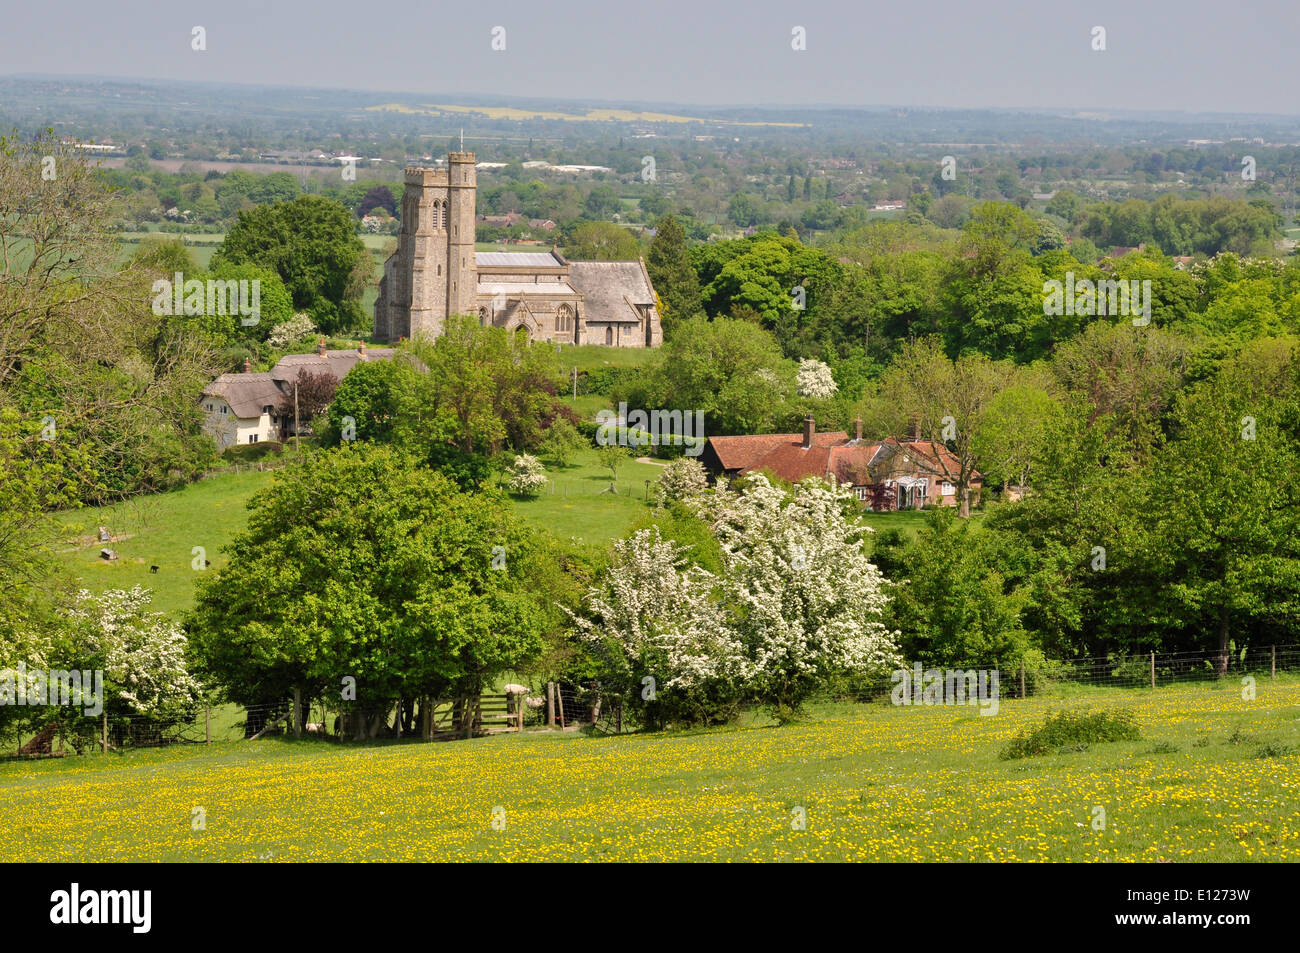 Bucks - Chiltern Hills - Ellesborough - view high on Beacon Hill over fields and hedgerows to parish church - spring sunlight - Stock Image